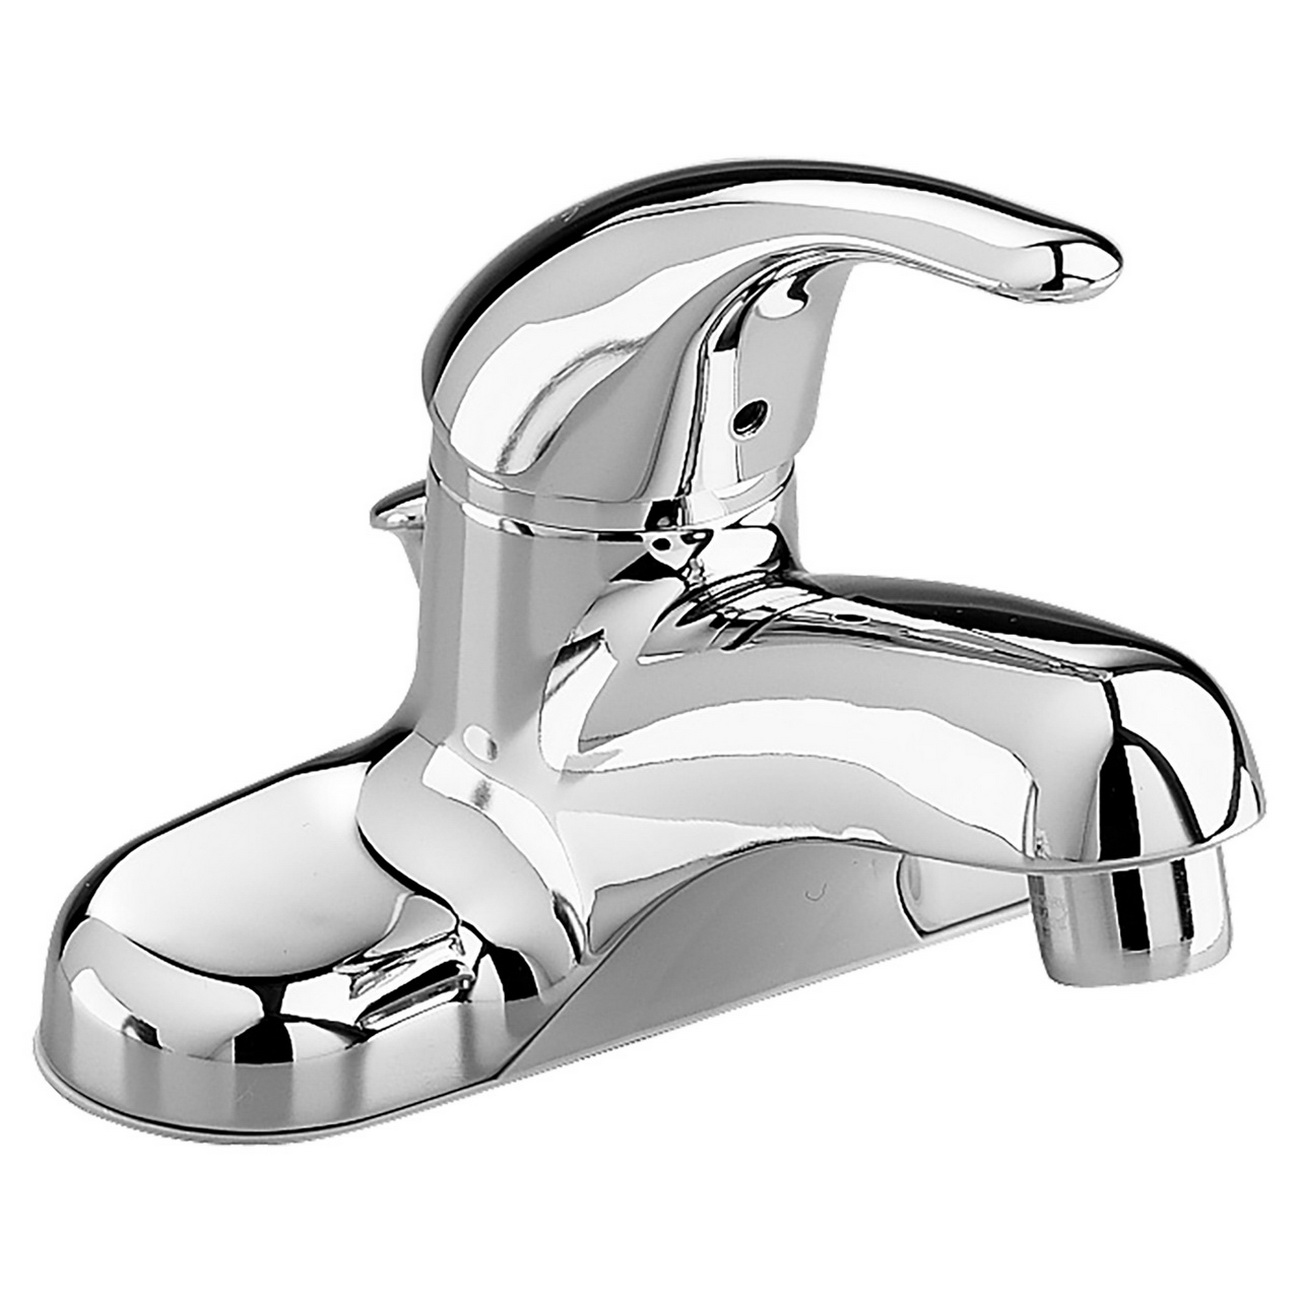 American Standard Colony® Soft 2175.504.002 Polished Chrome Brass Single Control Lavatory Faucet, 1/2 in, Male Threaded